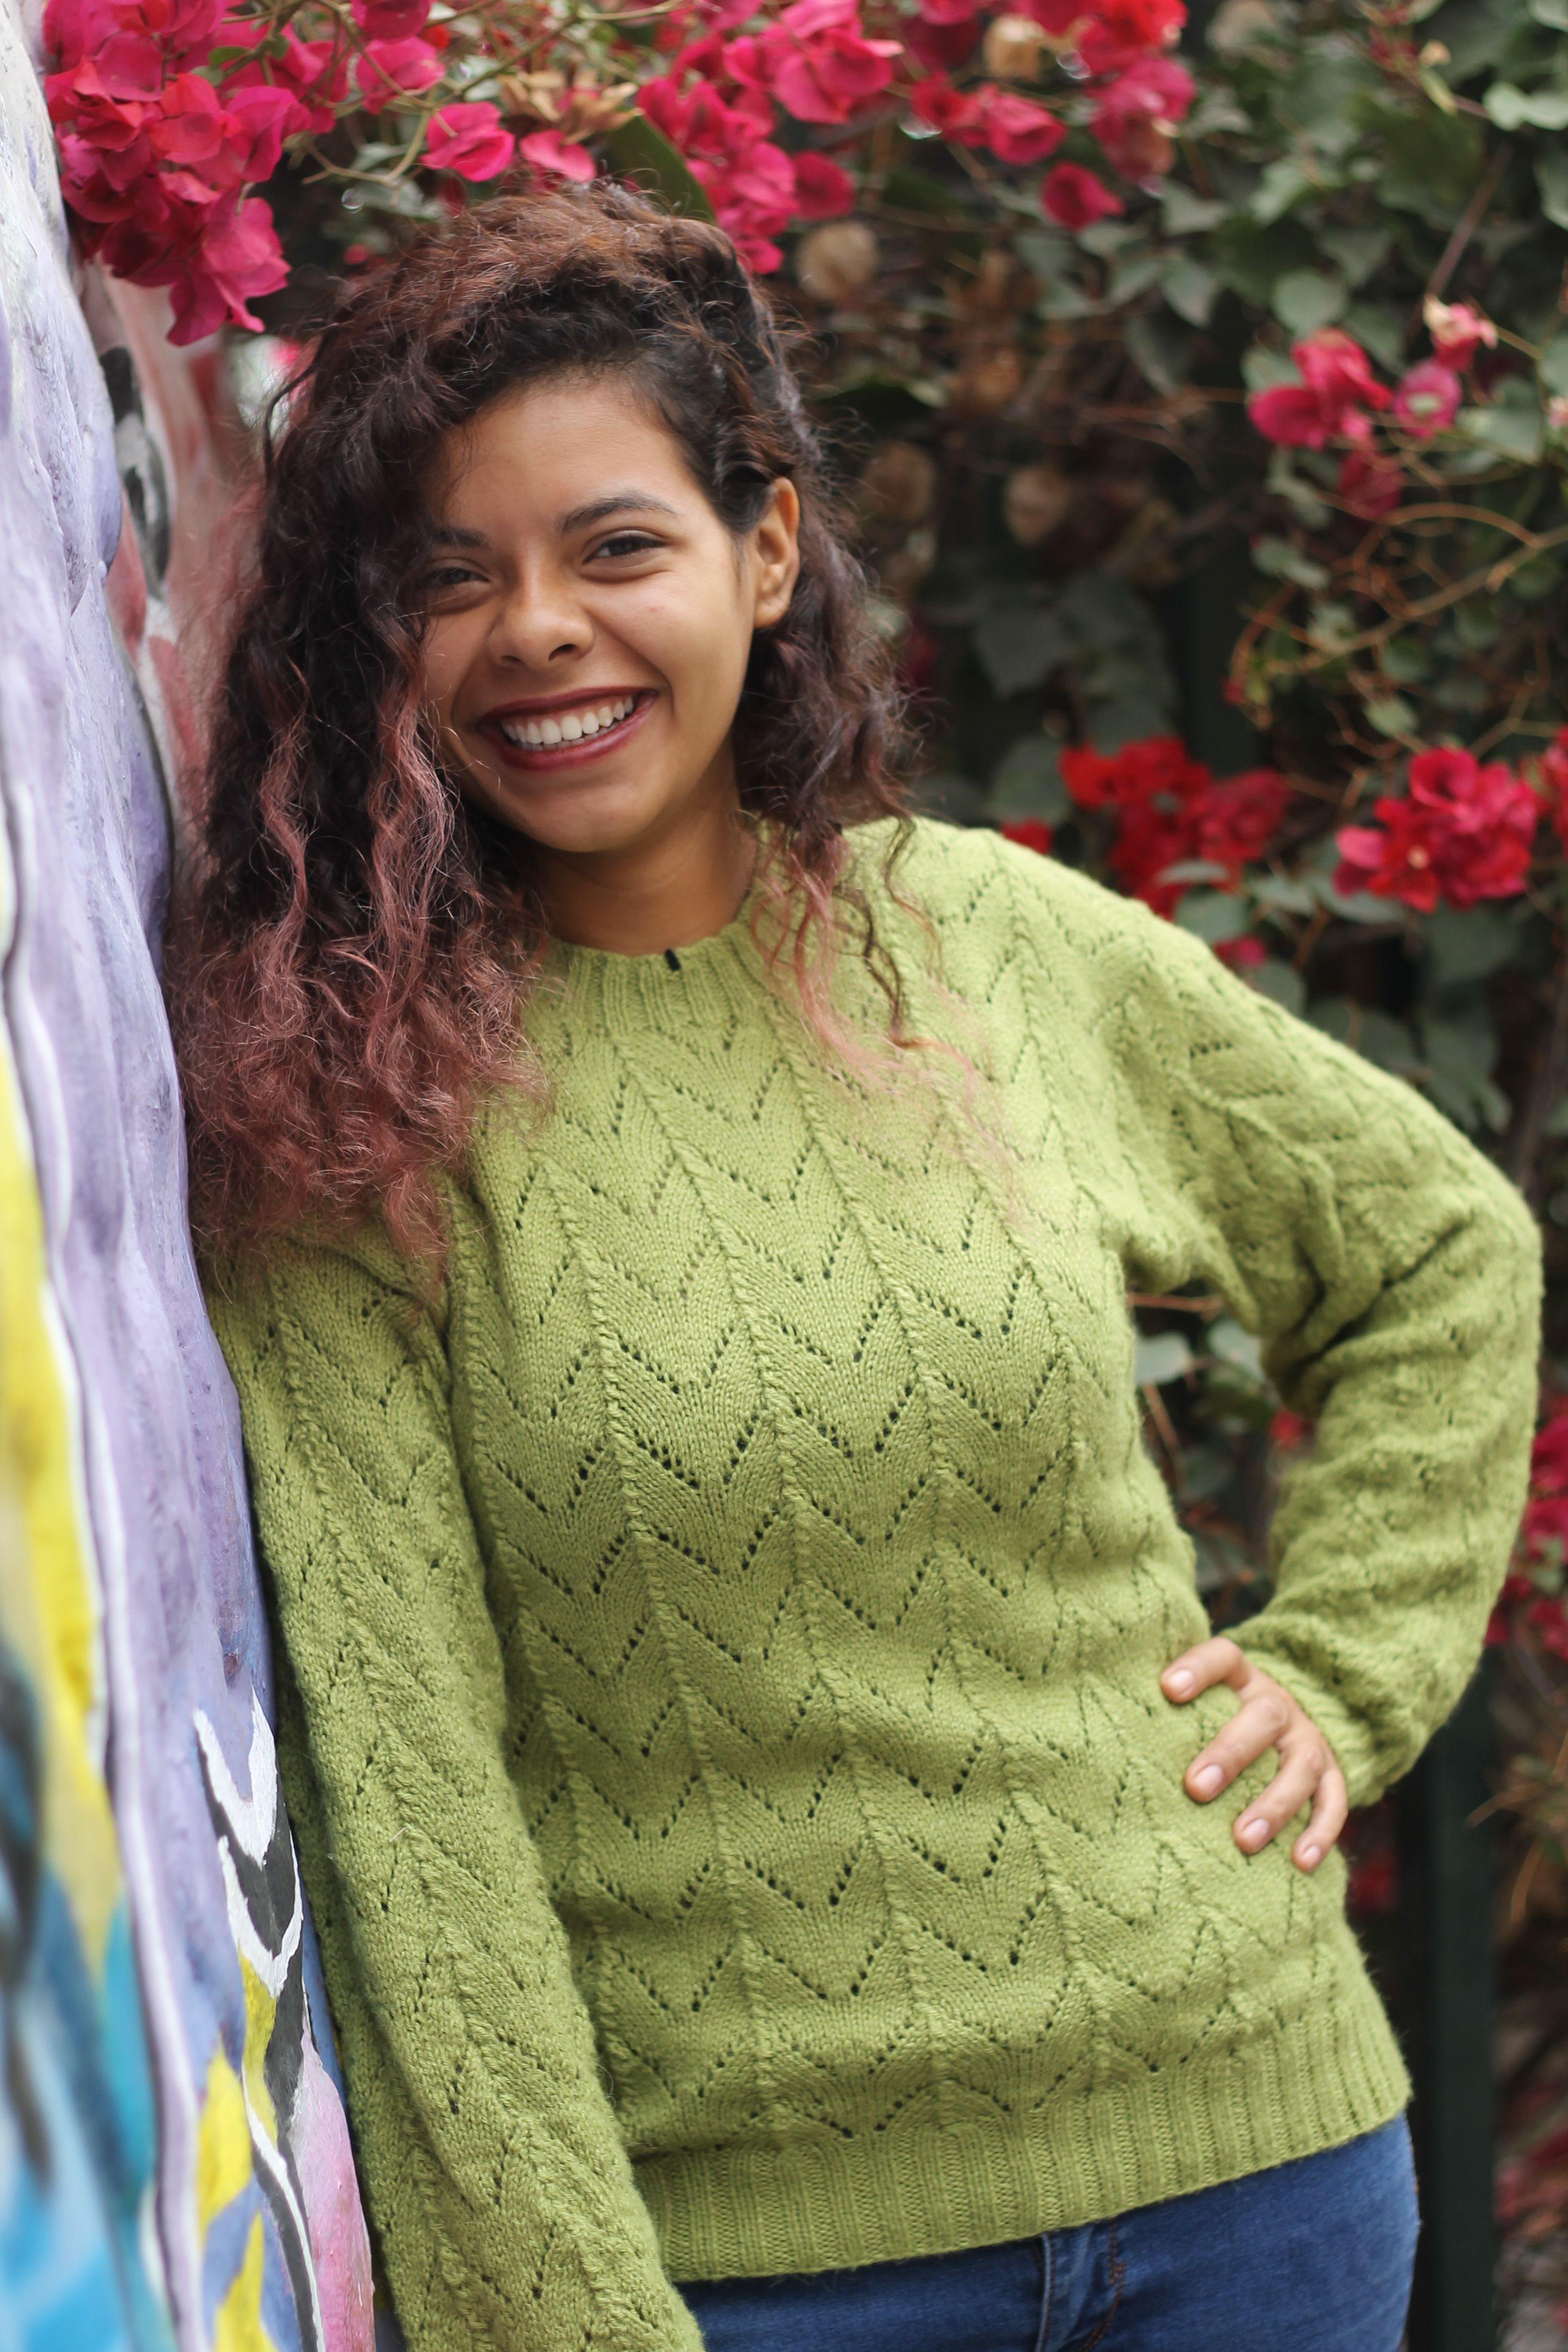 This Sweater For Women Is 100 Handmade By Peruvian Artisans And Is Baby Alpaca Wool The Design Is Nice With Lace S Sweaters For Women Sweaters Alpaca Sweater